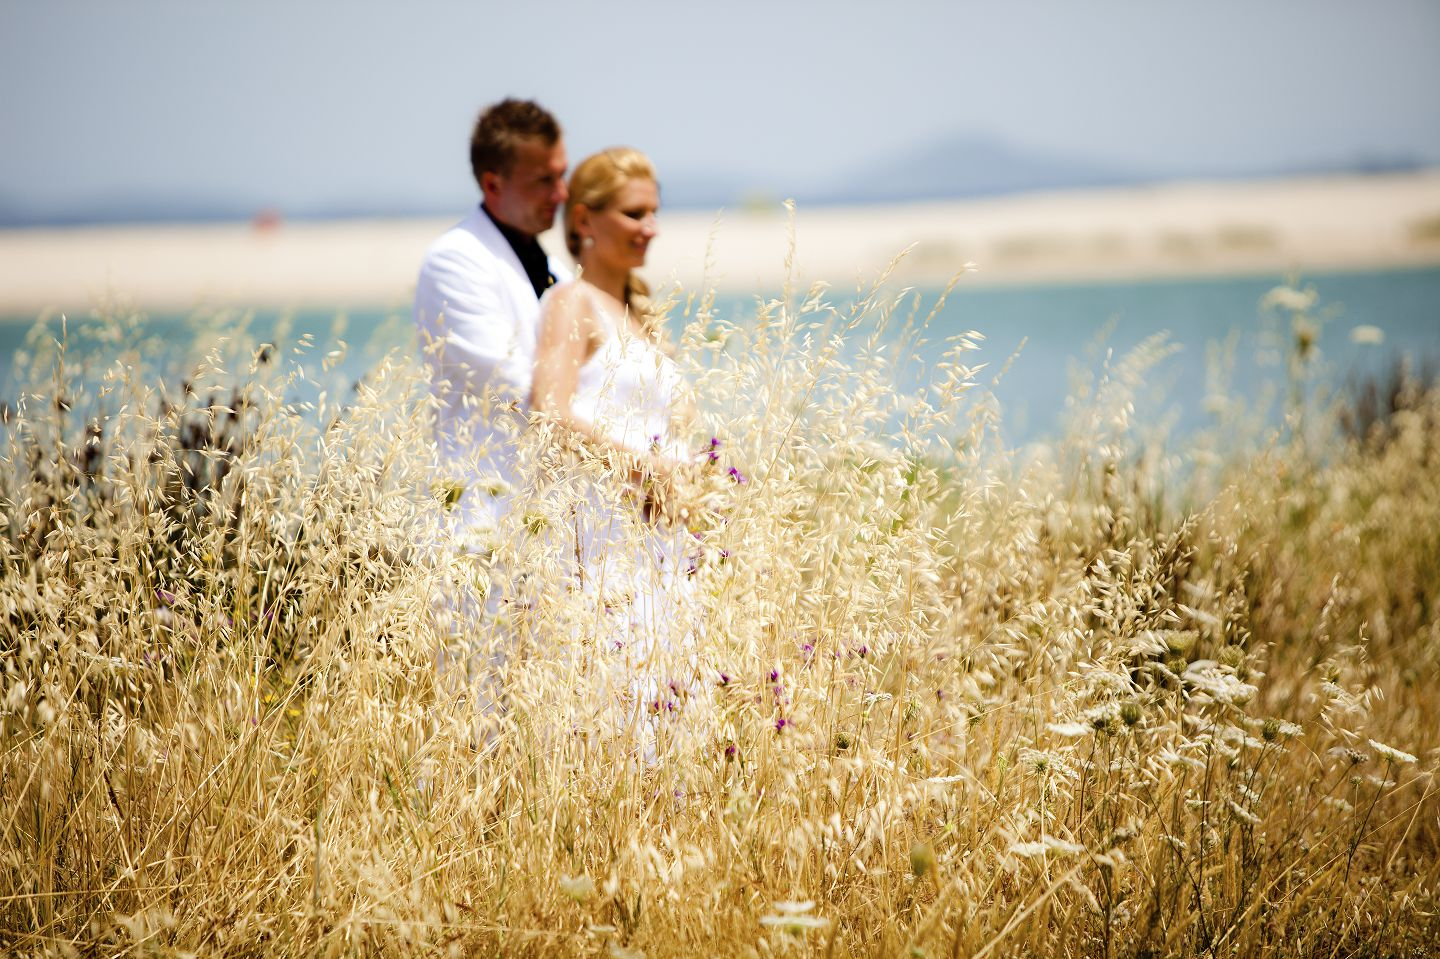 greece-lefkada-wedding-natalija-vasja-30